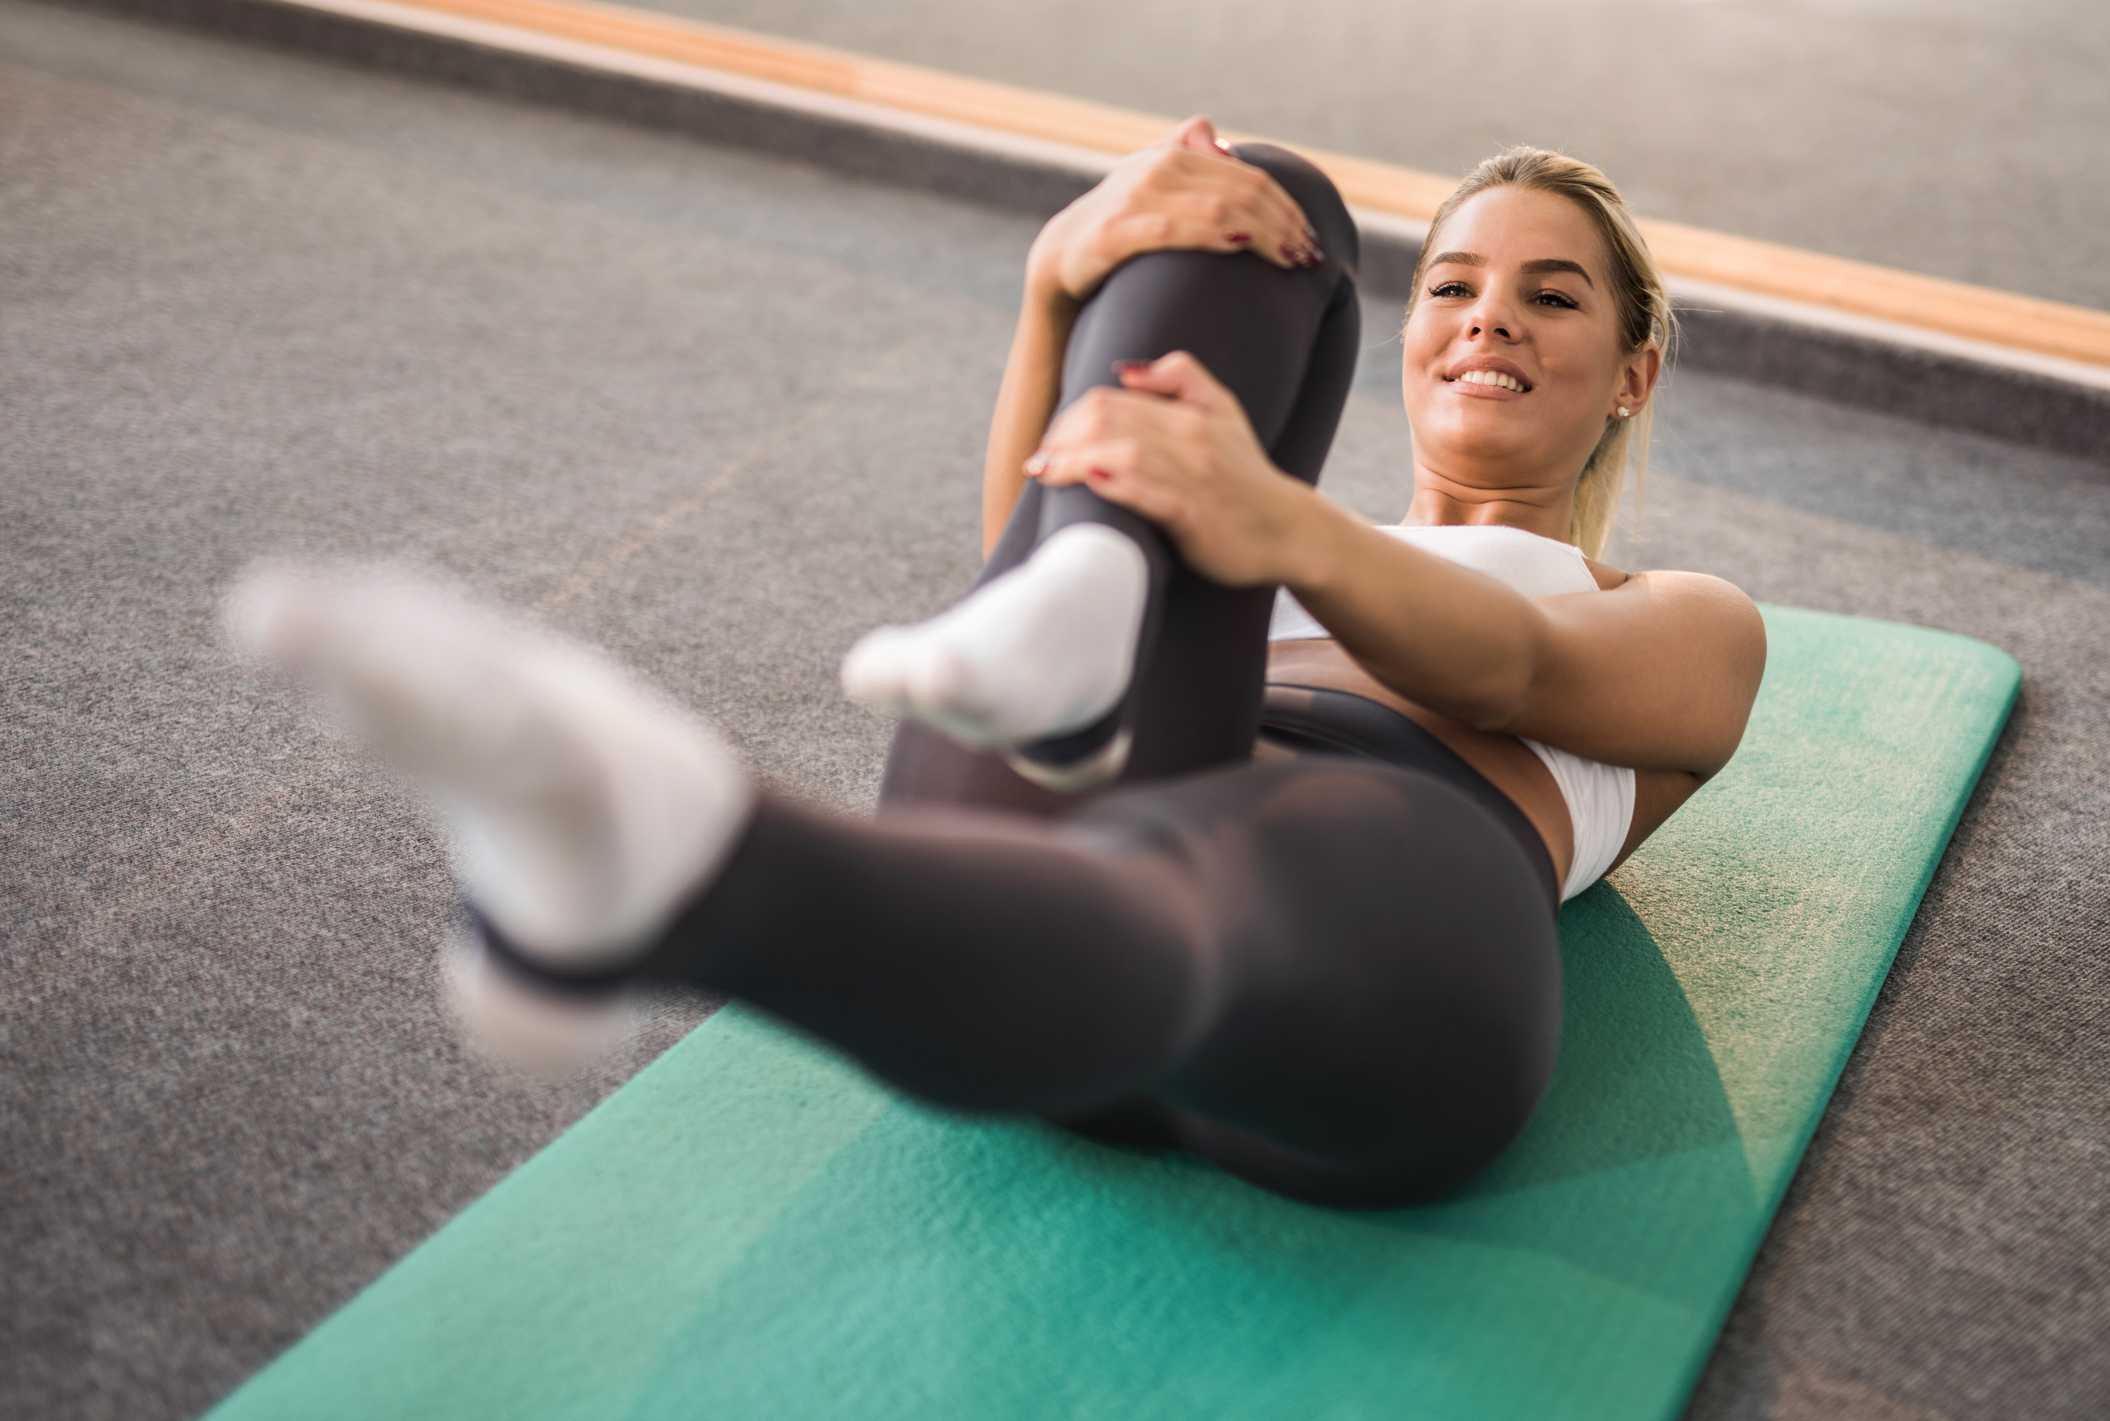 woman doing Pilates on mat